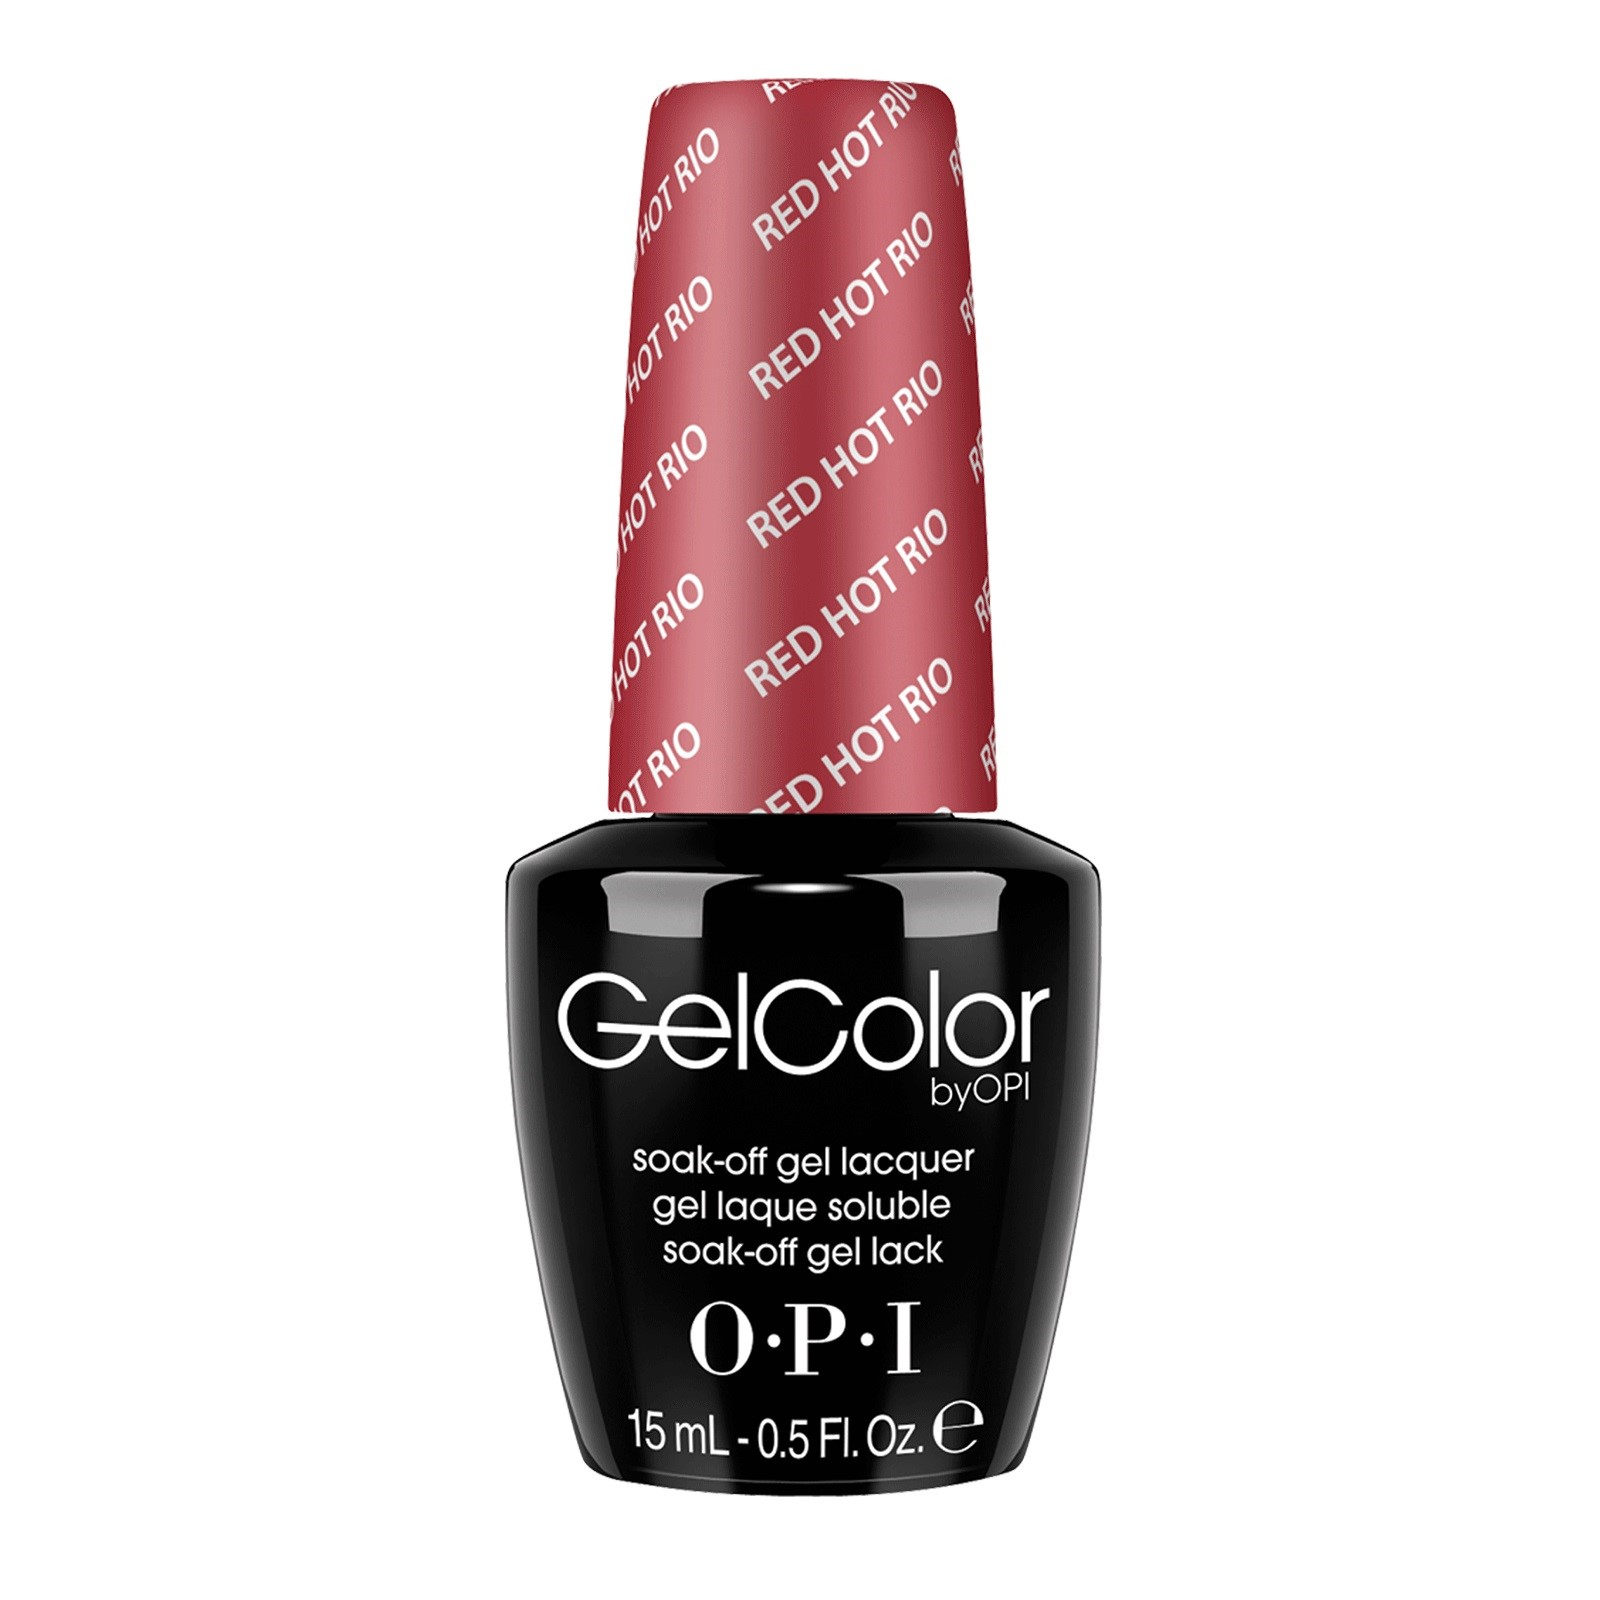 OPI GelColor, Red Hot Rio